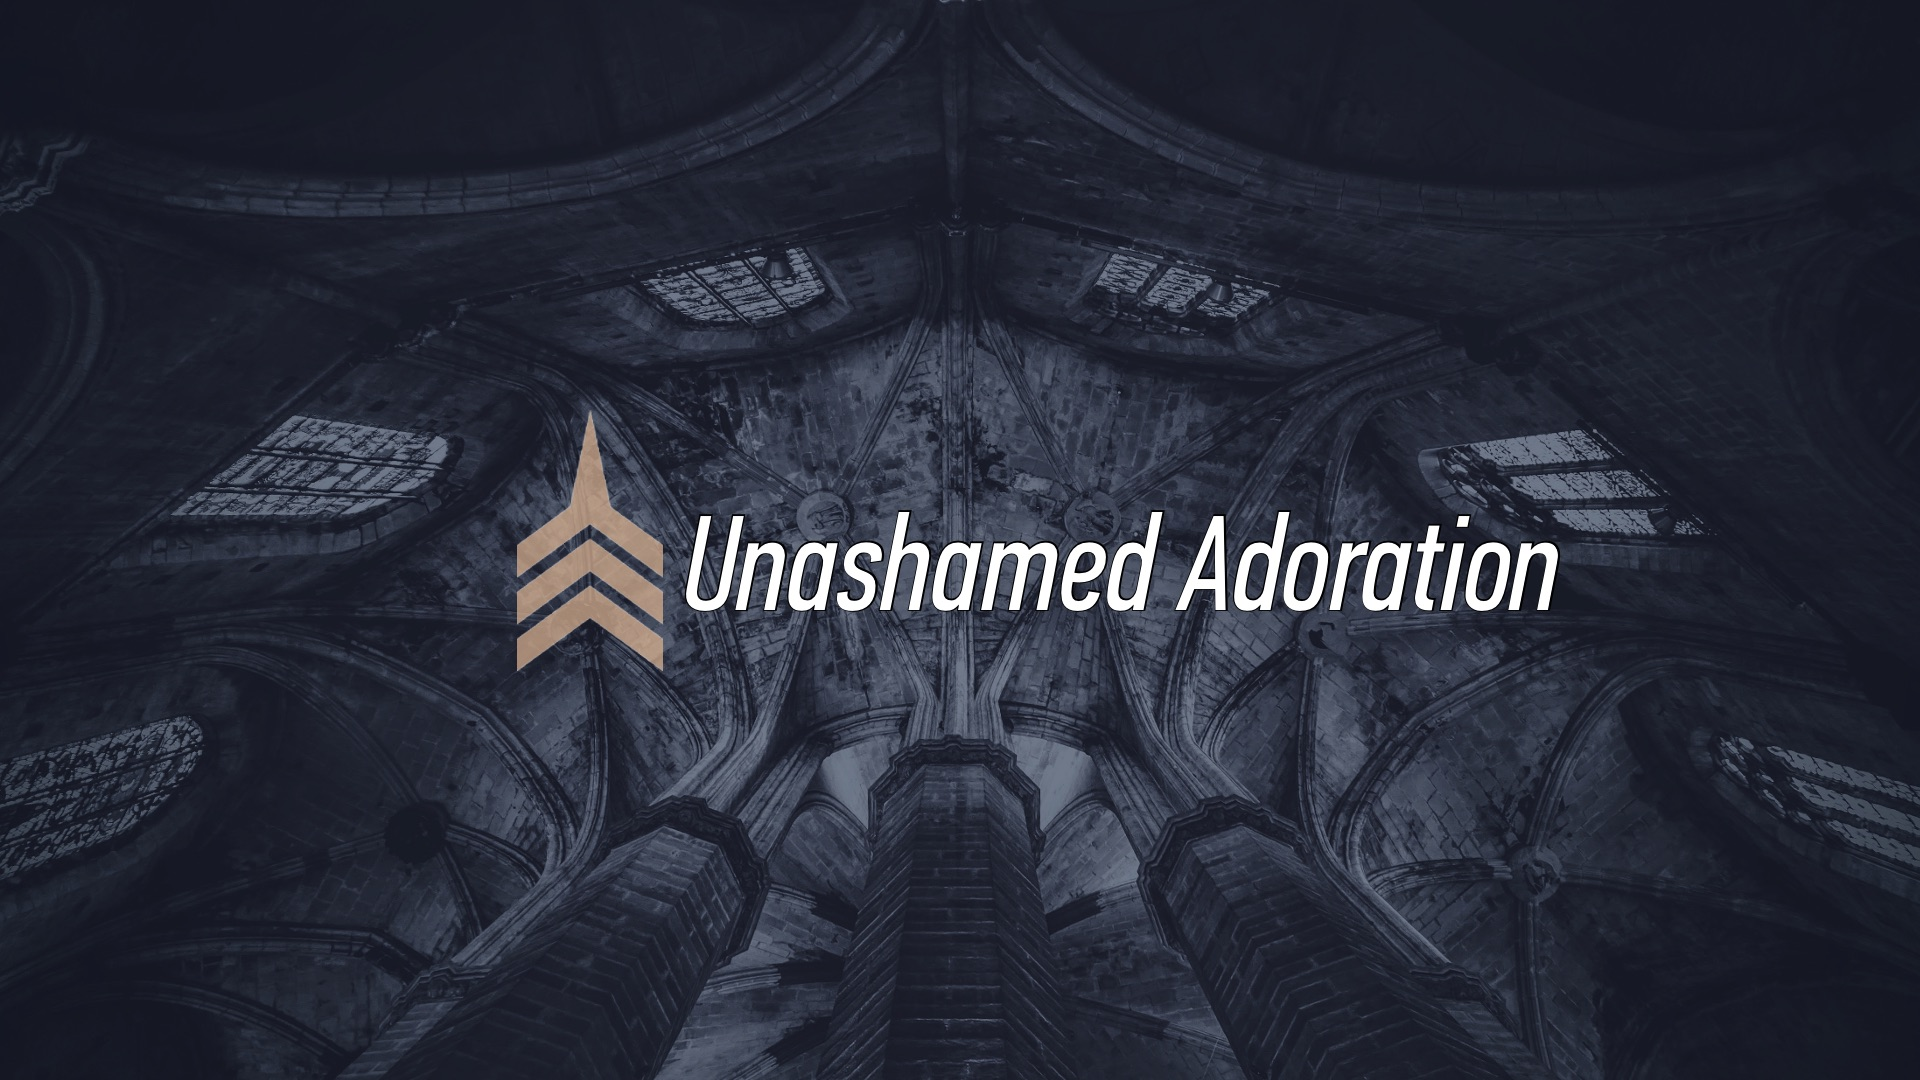 20170820 Unashamed Adoration.jpg